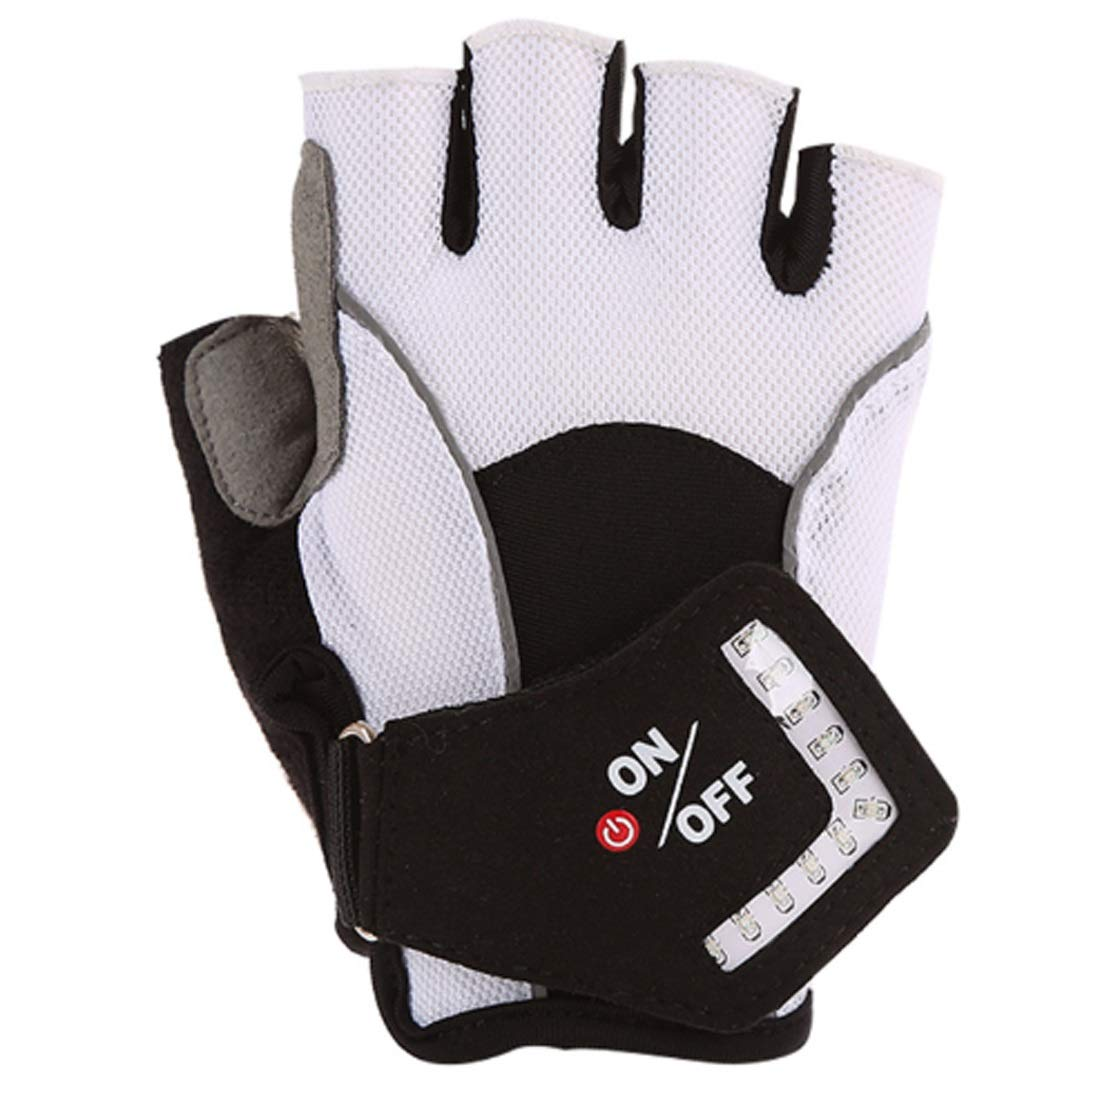 Hexiansheng Men's Cycling Gloves Lighted Gloves, Non-Slip Breathable Sports Gloves Unisex Gloves for Mountaineering, Cycling (Size : L) by Hexiansheng